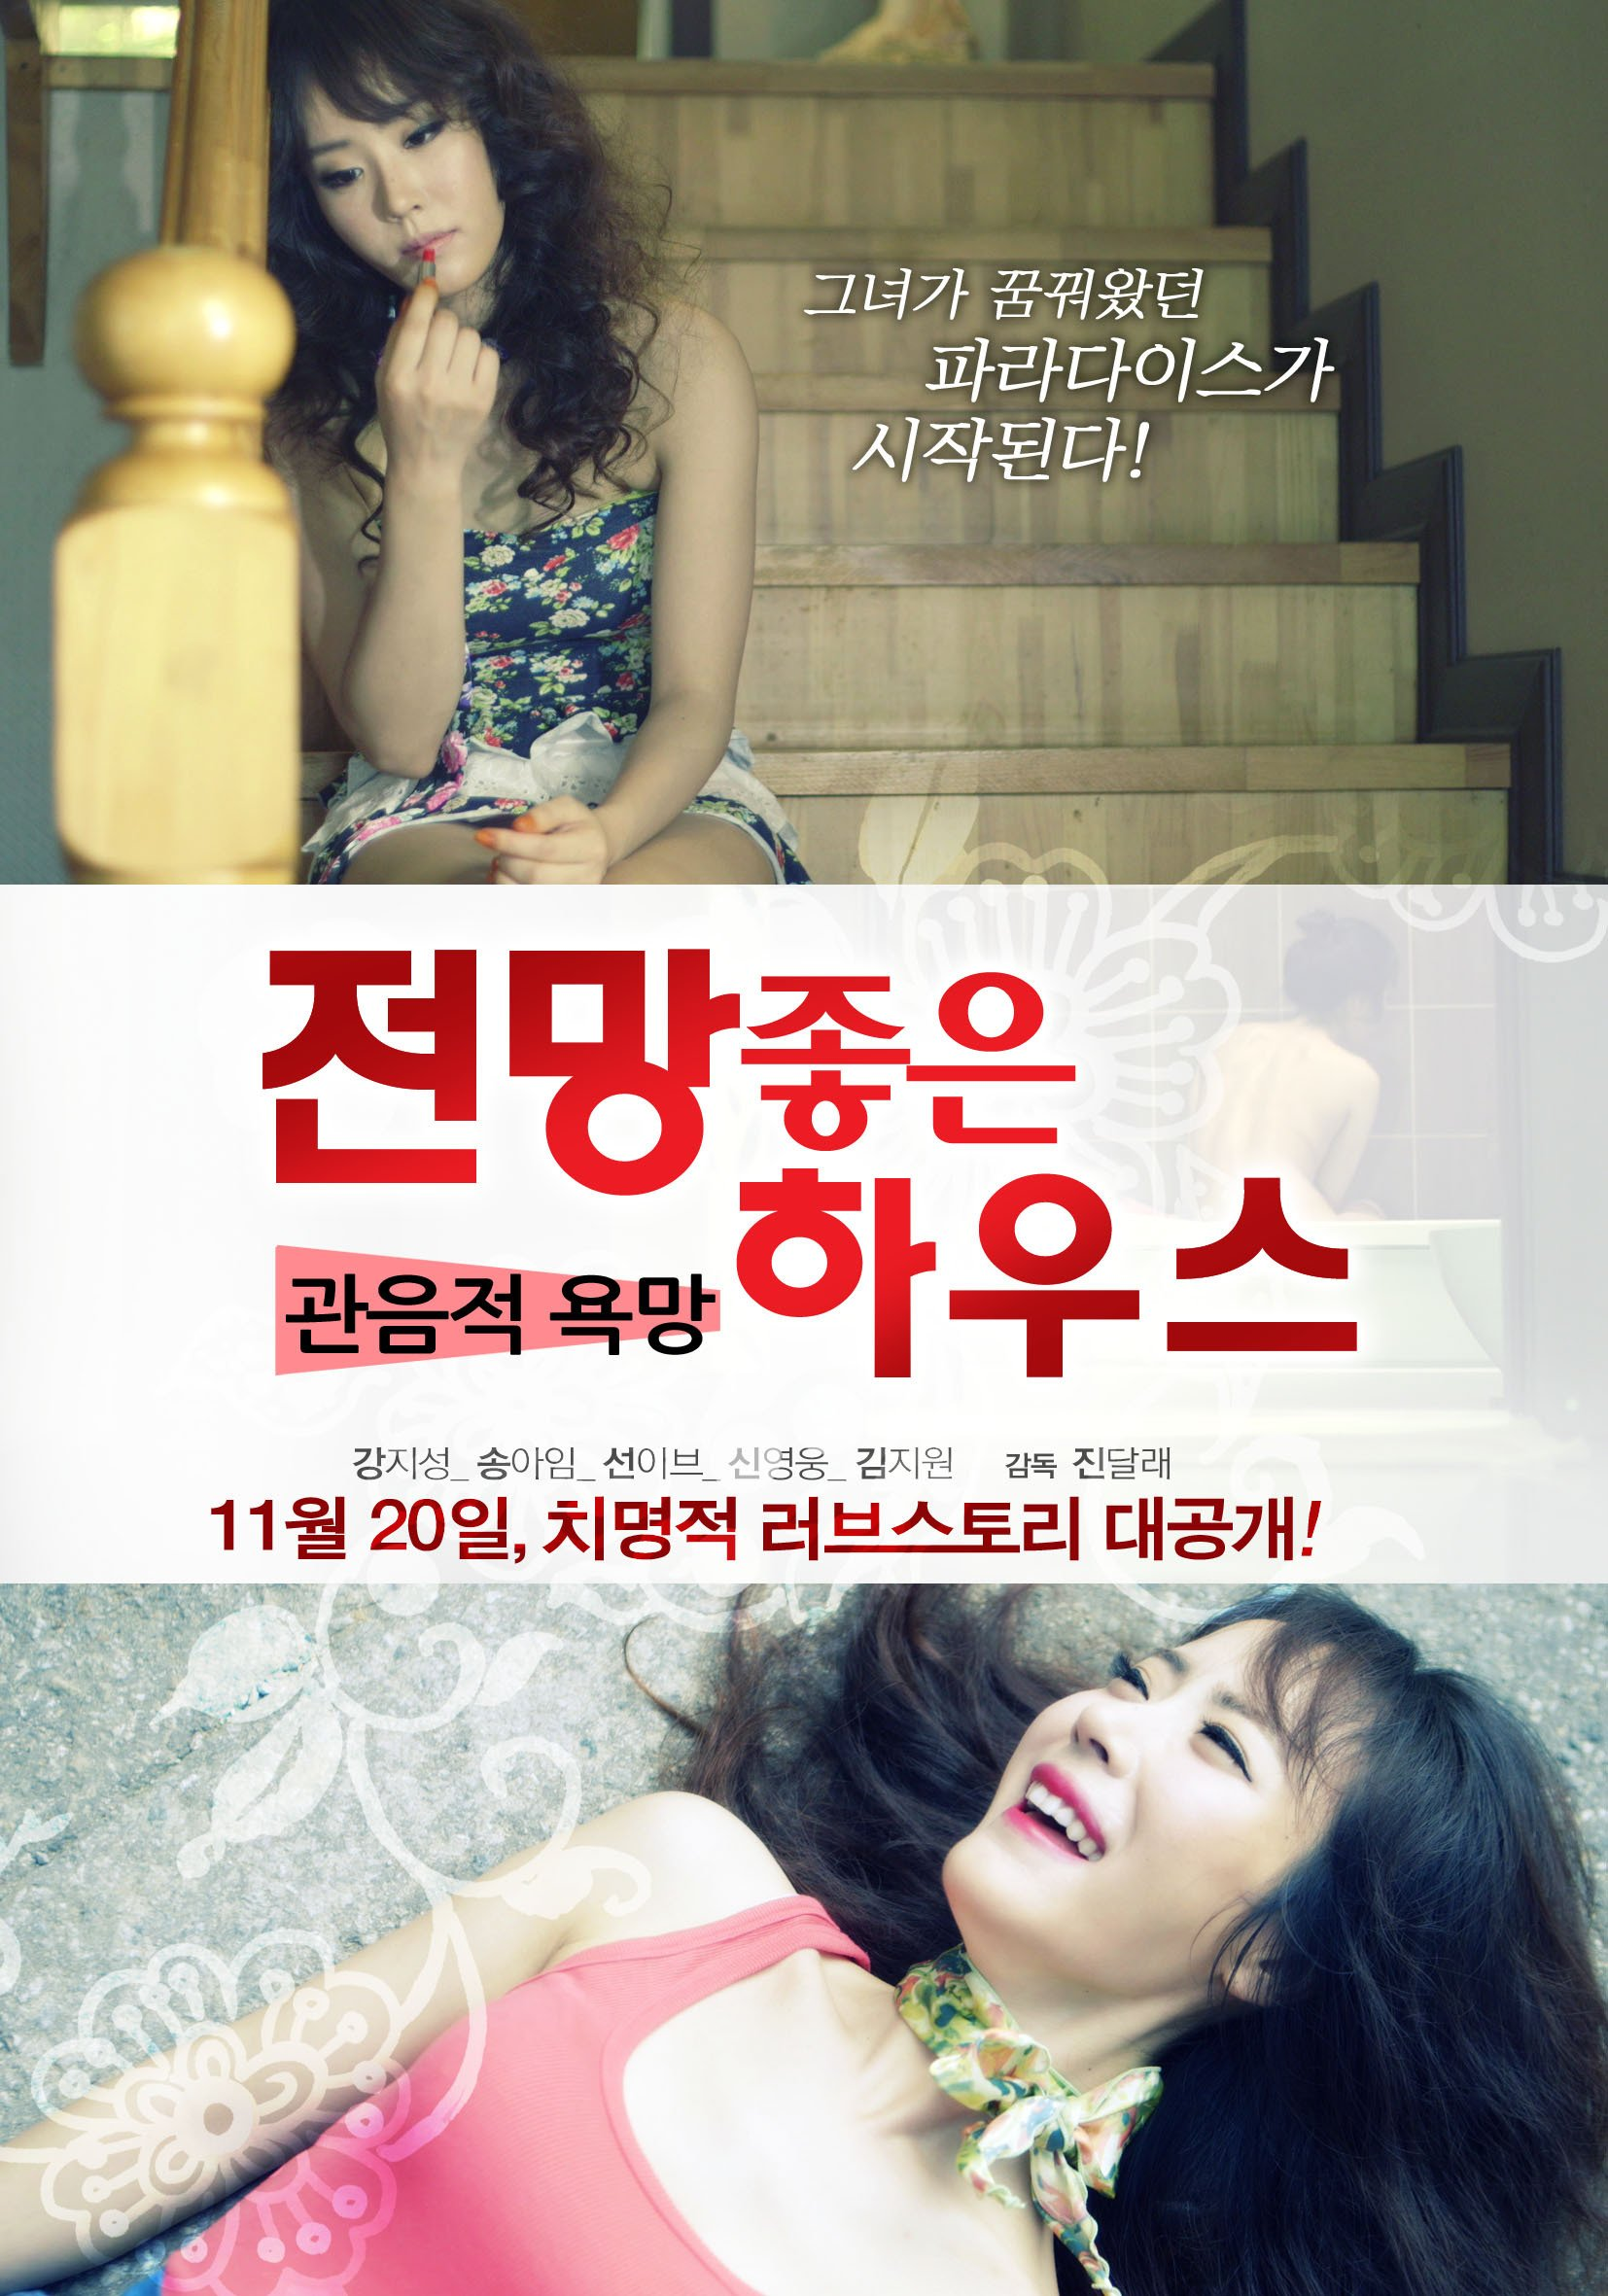 HOUSE WITH A GOOD VIEW VOYEURISTIC DESIRE 2013-[หนังอาร์เกาหลี-KOREAN-EROTIC]-[18+]